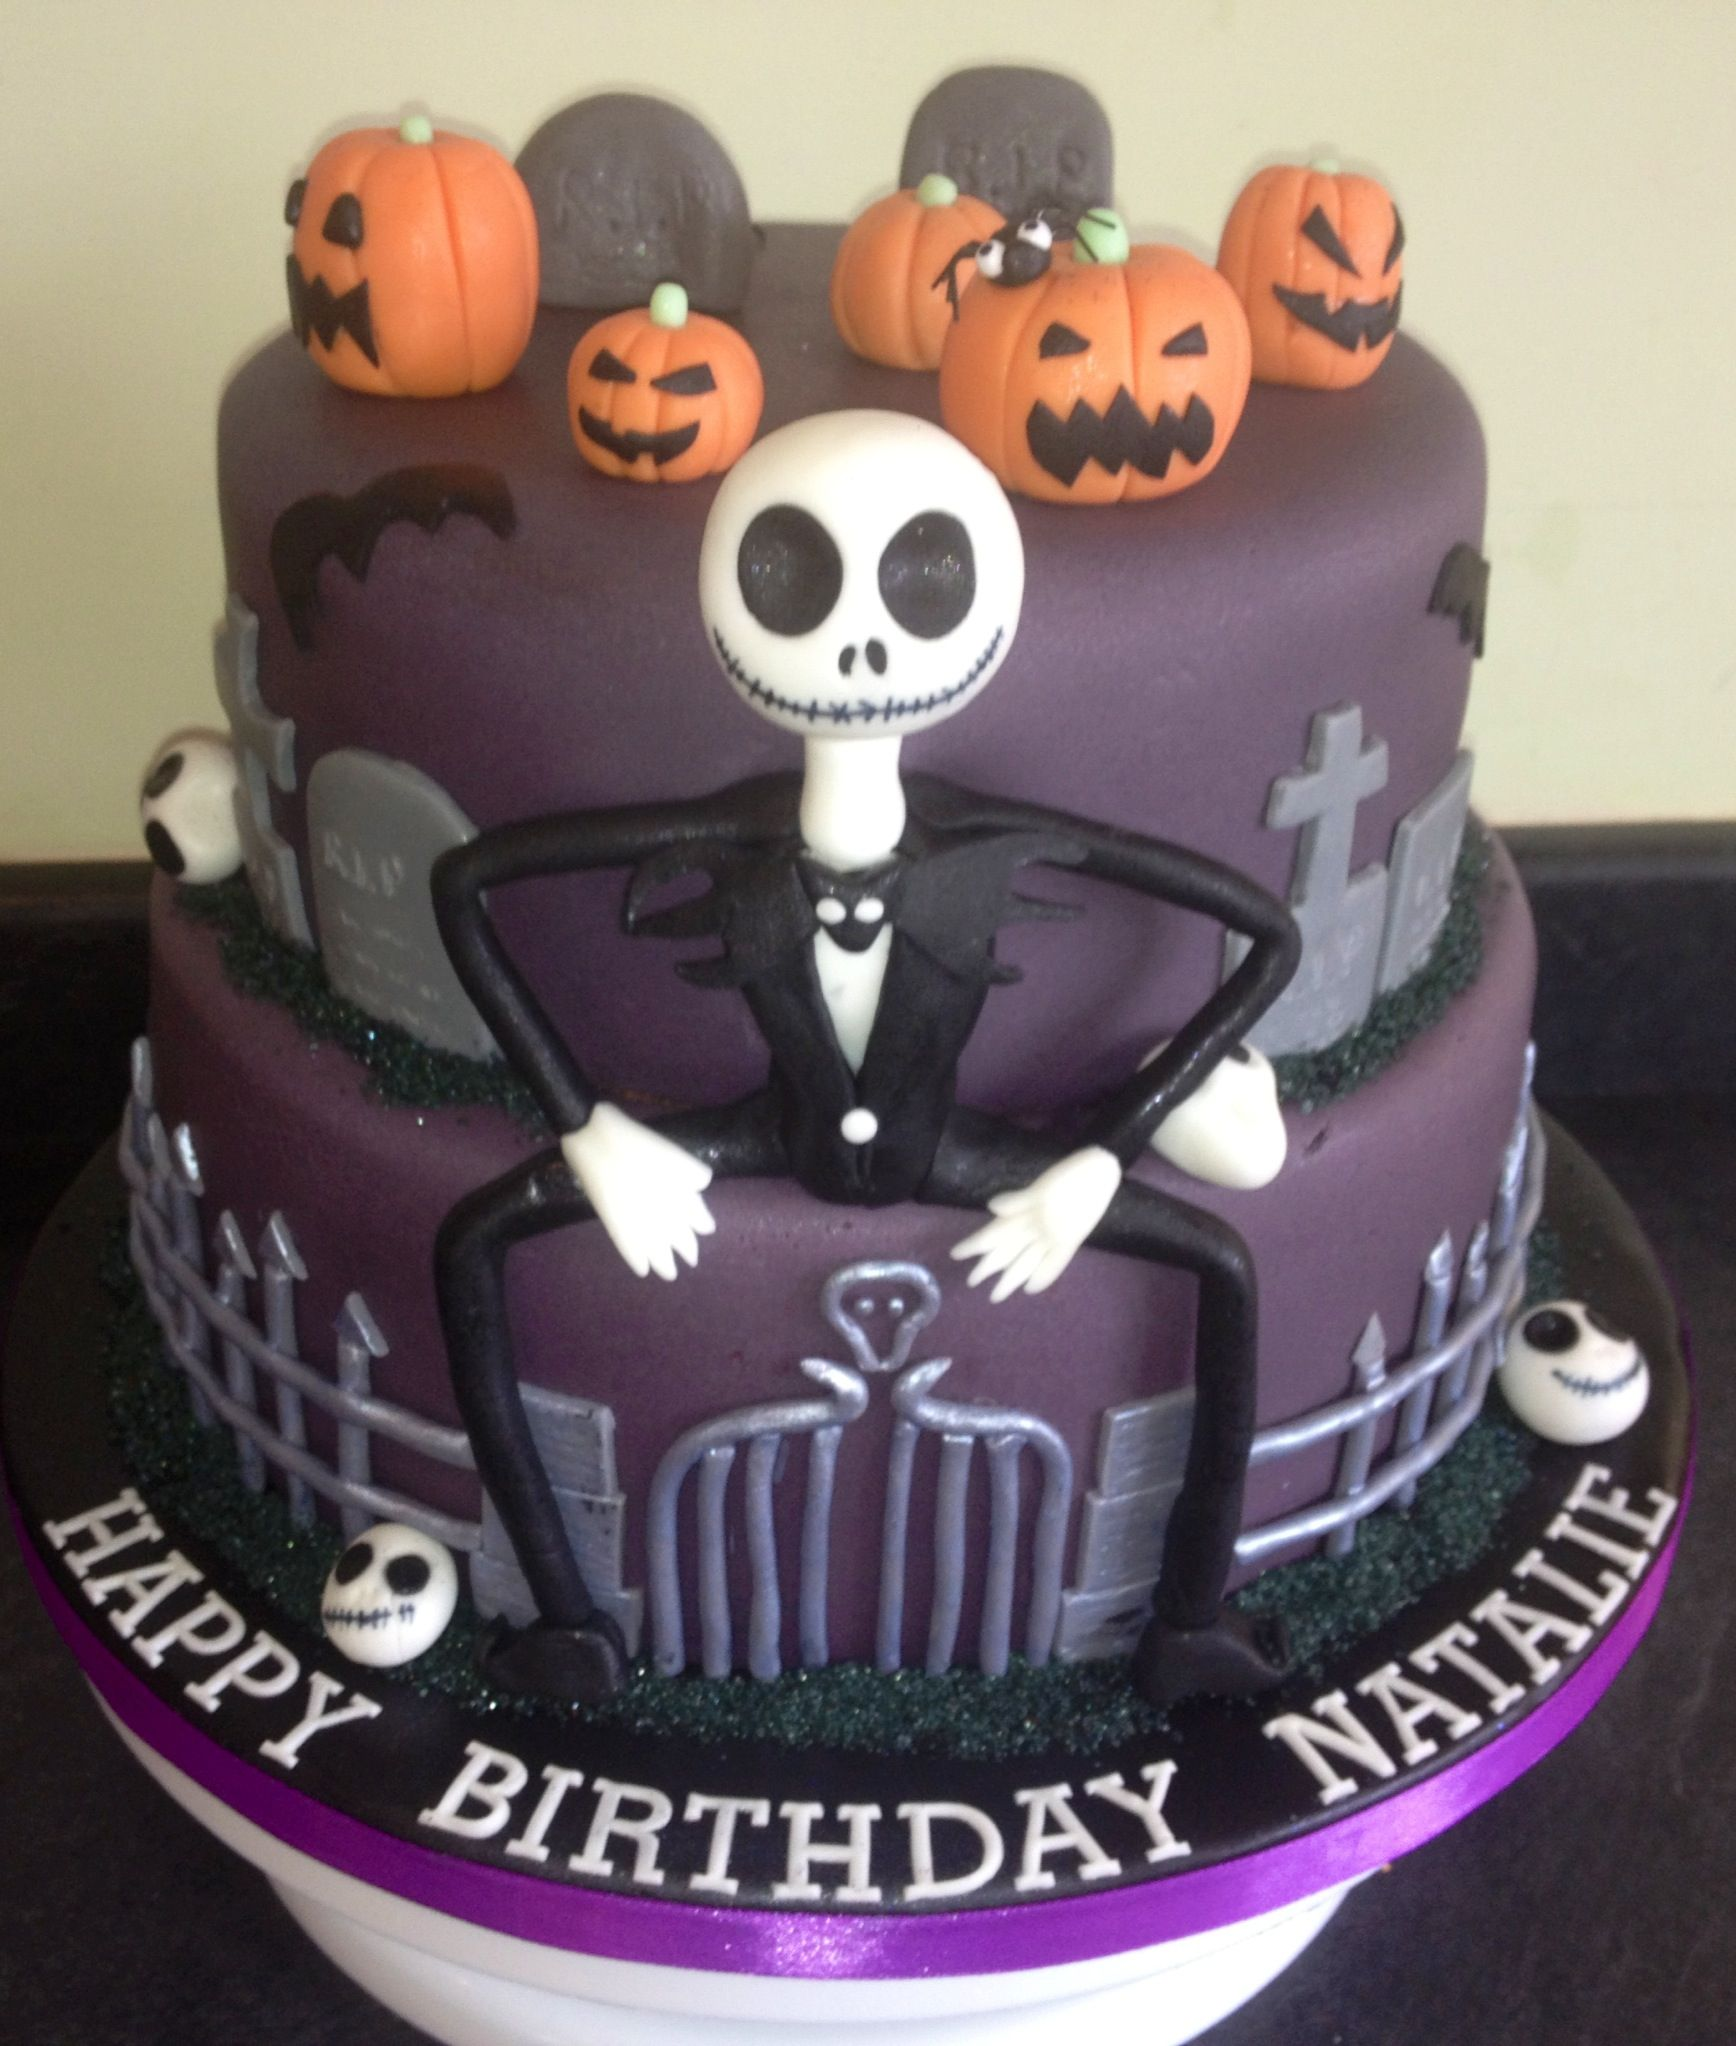 The Nightmare Before Christmas Themed Cake Hadleys Party